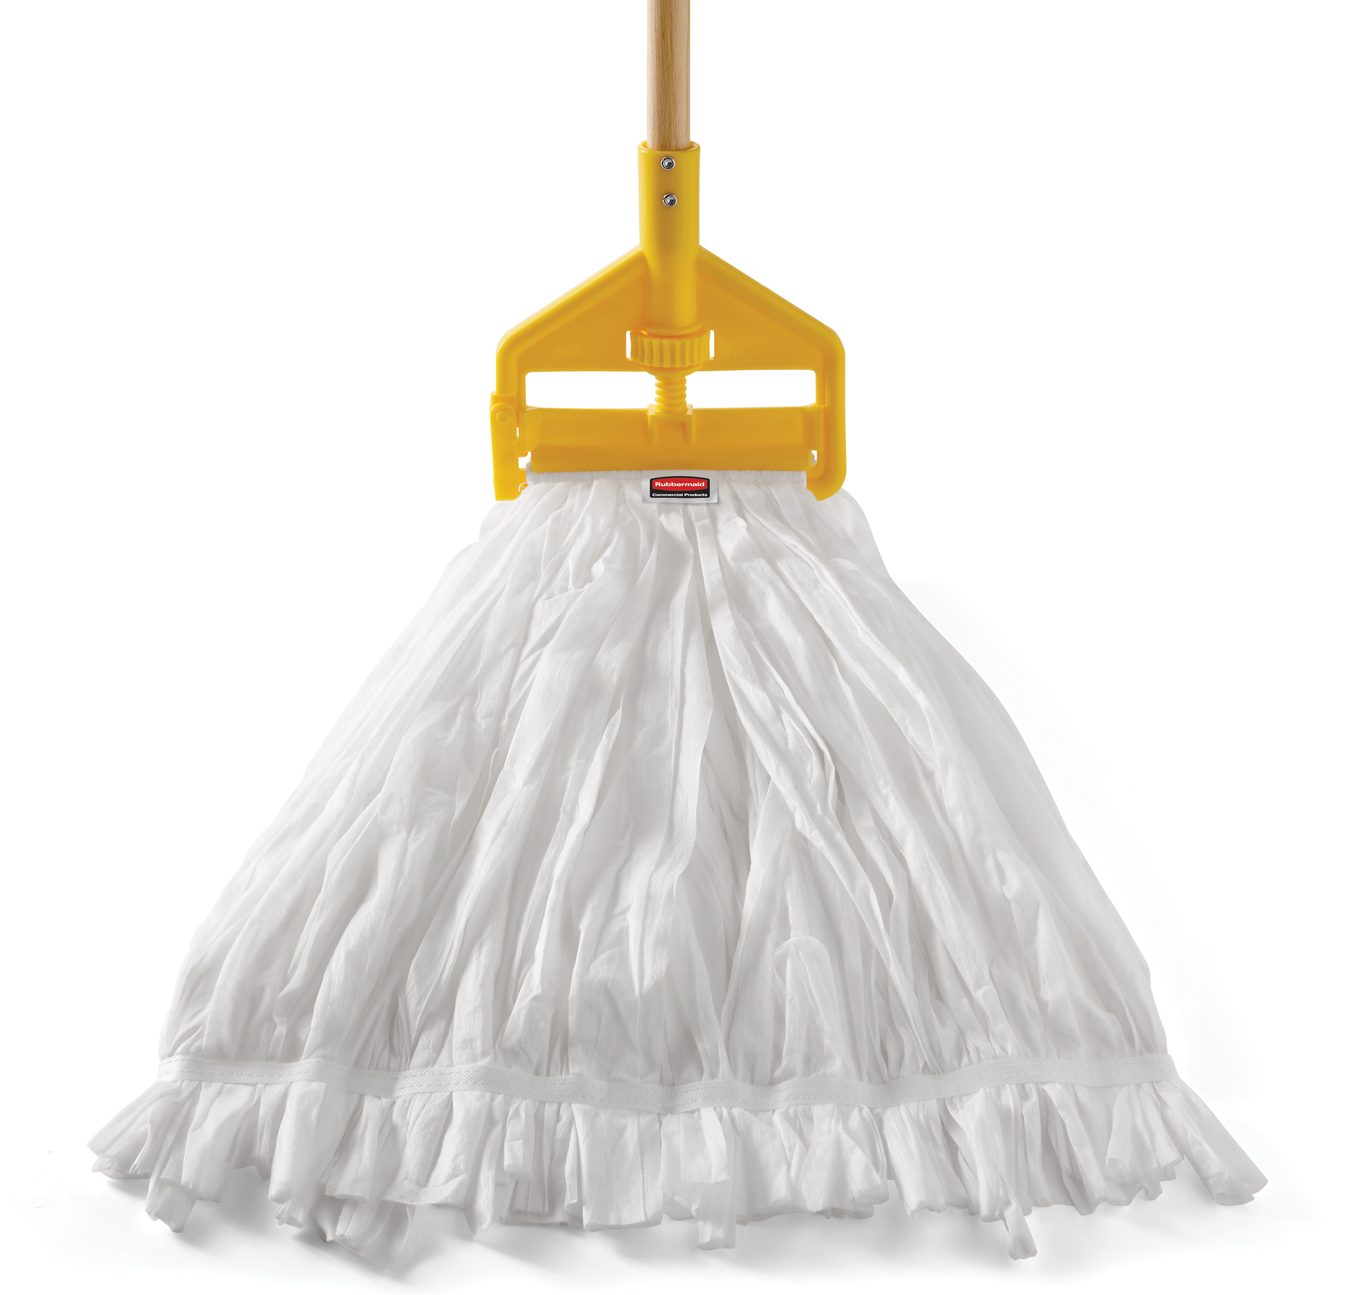 White disposable mop with yellow handle